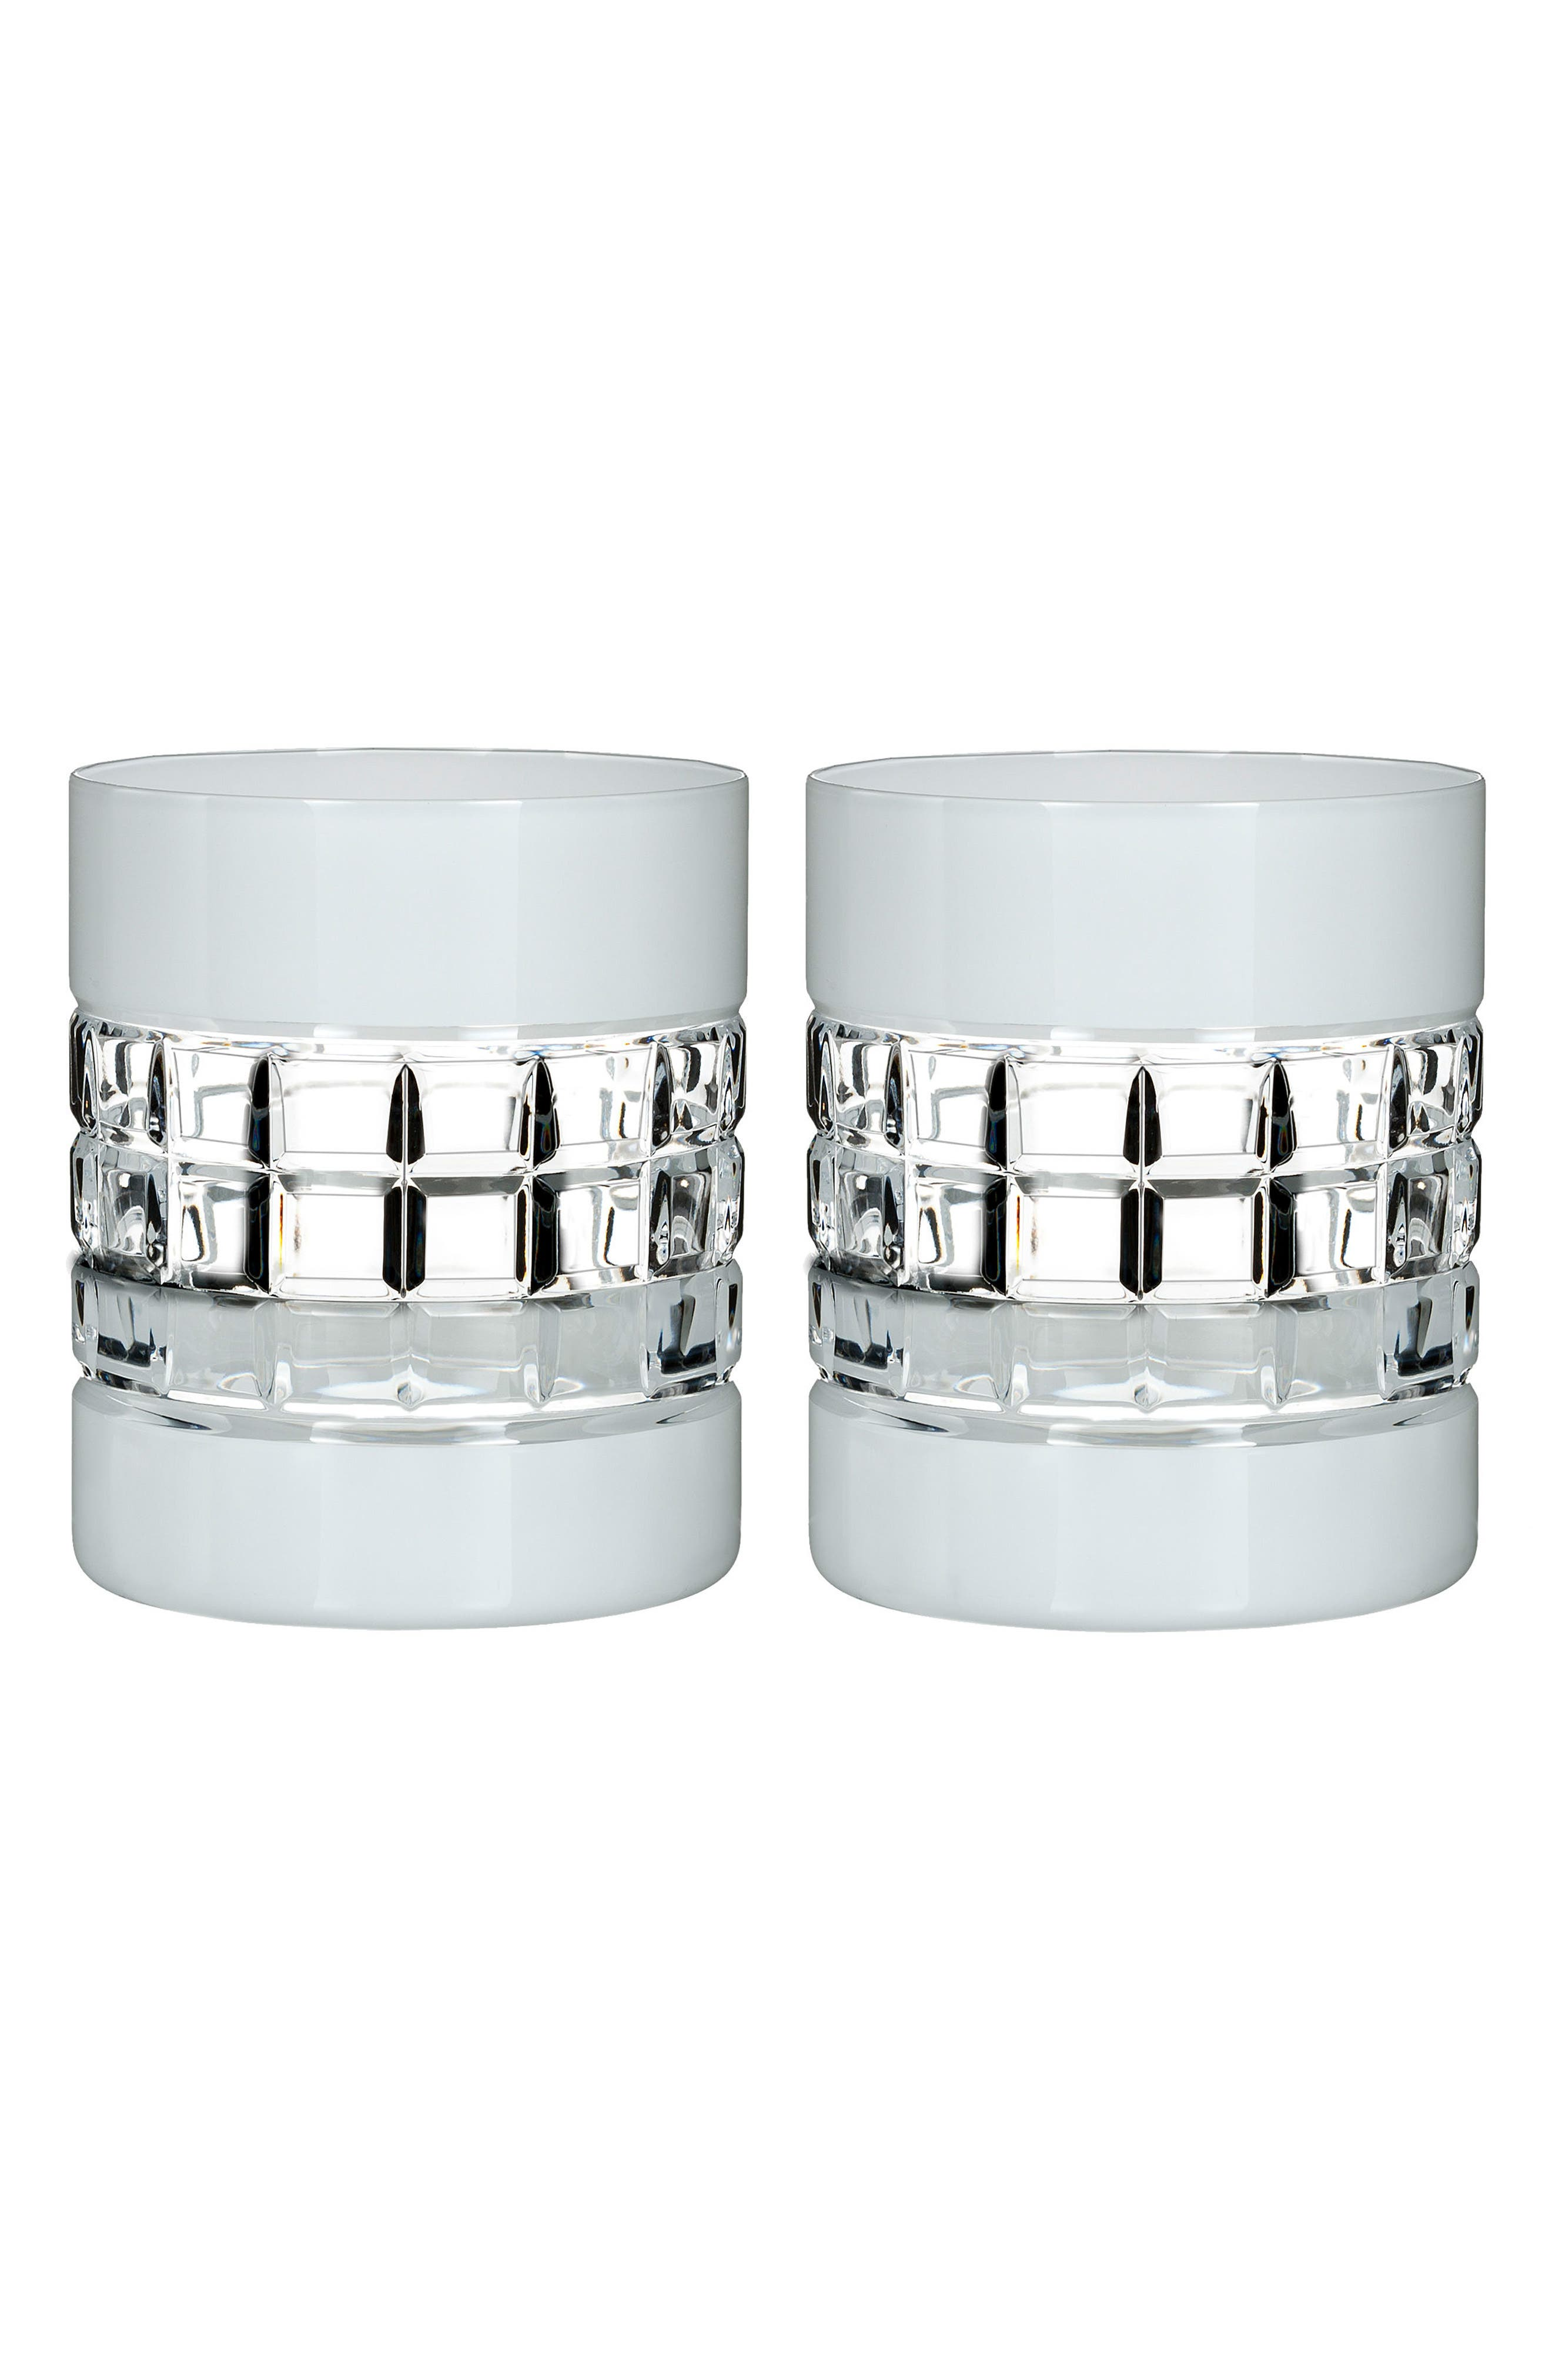 London Set of 2 White Lead Crystal Double Old Fashioned Glasses,                         Main,                         color,